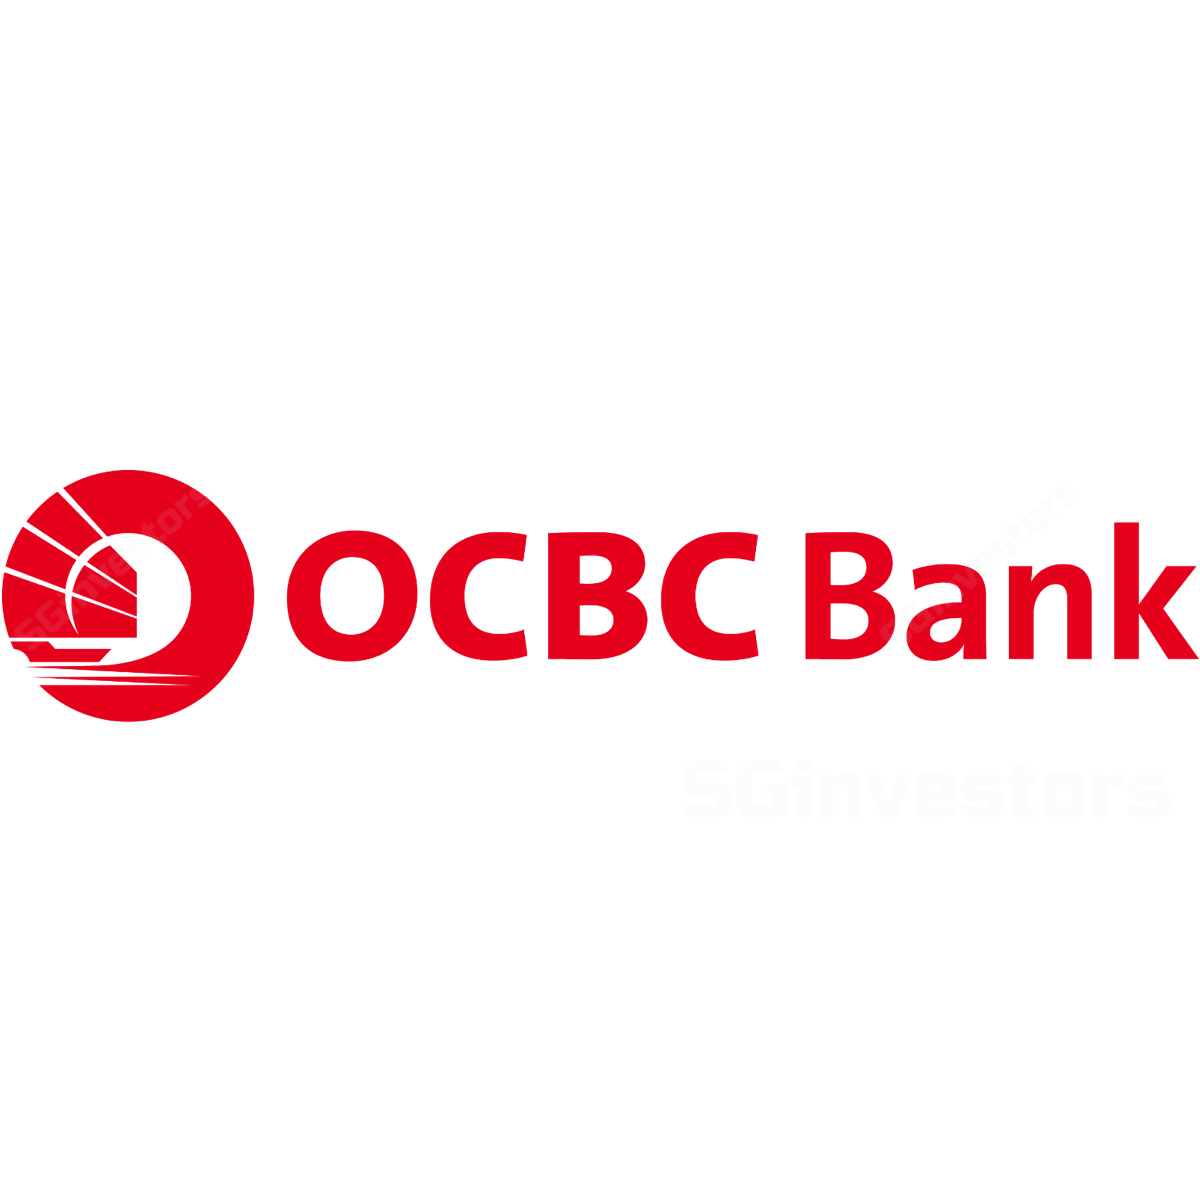 Oversea-Chinese Banking Corp - Phillip Securities 2018-02-21: Stellar Performance Across All Segments